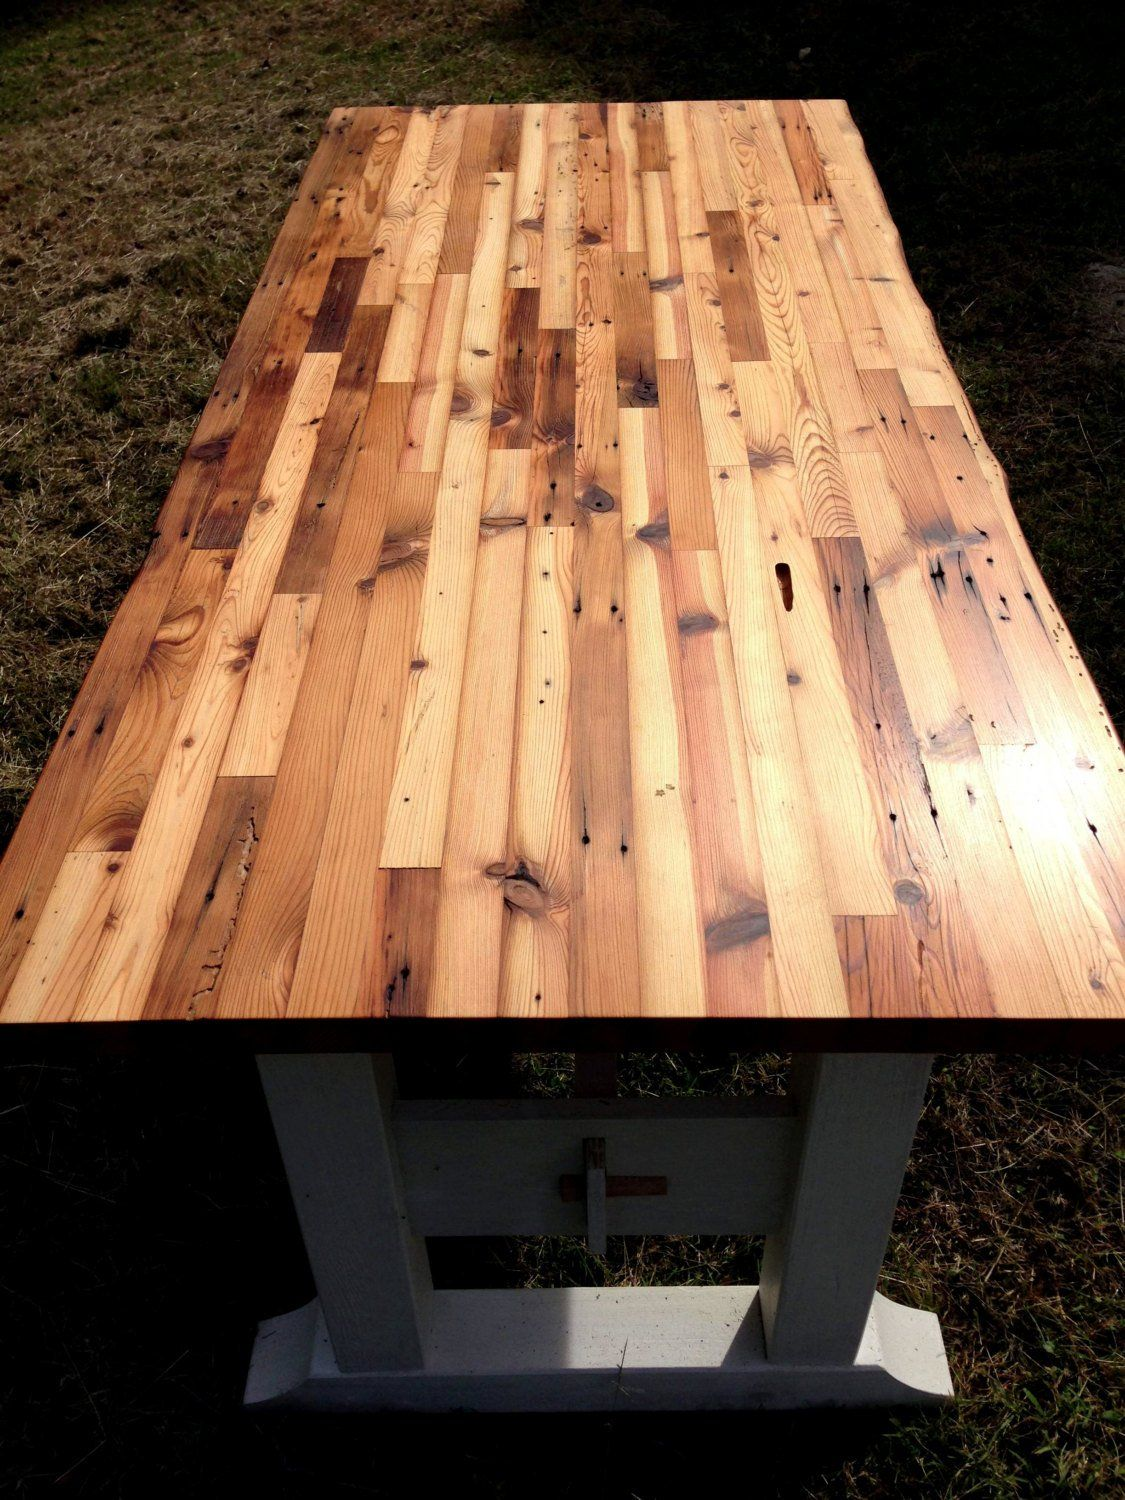 Butcher Block Table Top And Trestle Frame Etsy Butcher Block Table Tops Butcher Block Tables Block Table